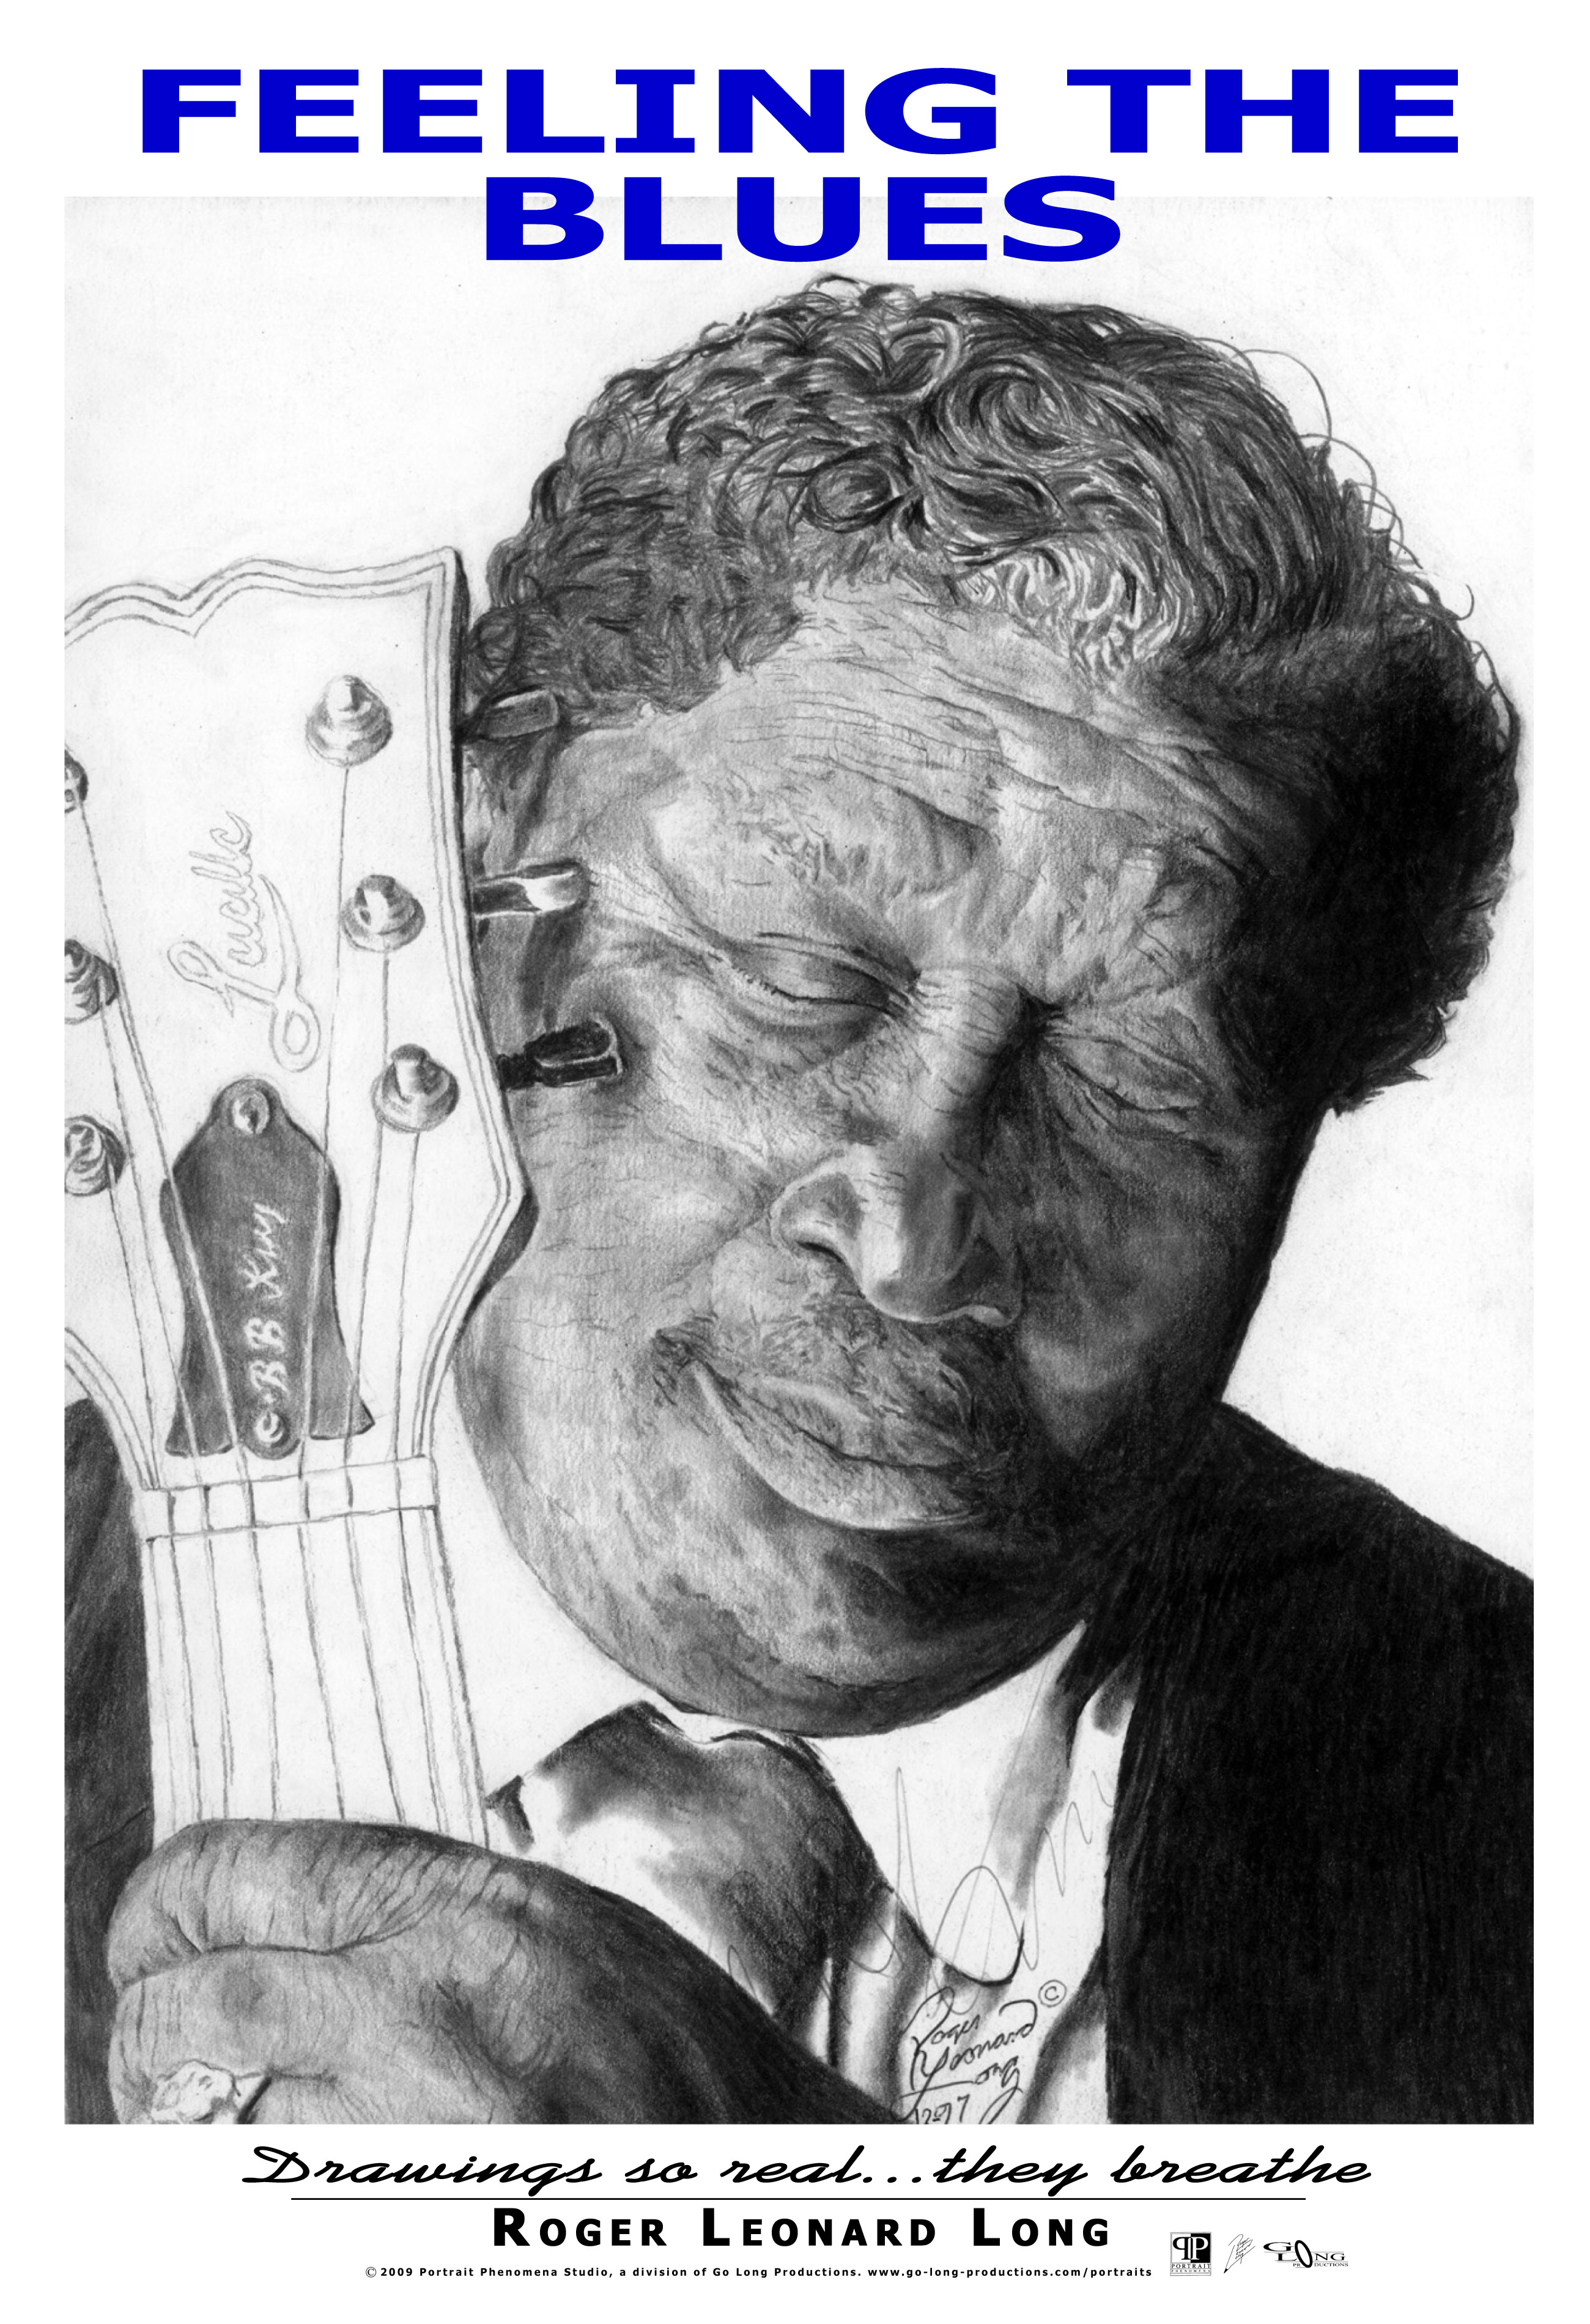 """This is an exclusive original poster from Roger Leonard Long. It features his photo realistic portrait drawing of B. B. (""""Blues Boy"""") King. The original drawing was signed by B. B. King and his reprinted signature is included in this """"11 X 17"""" poster making it a truly eclectic piece. This high-quality poster reprint captures the realism of that original portrait work and the artist hopes you can really get the sense of """"Feeling the Blues."""" Your poster is delivered securely and ready for easy mounting."""